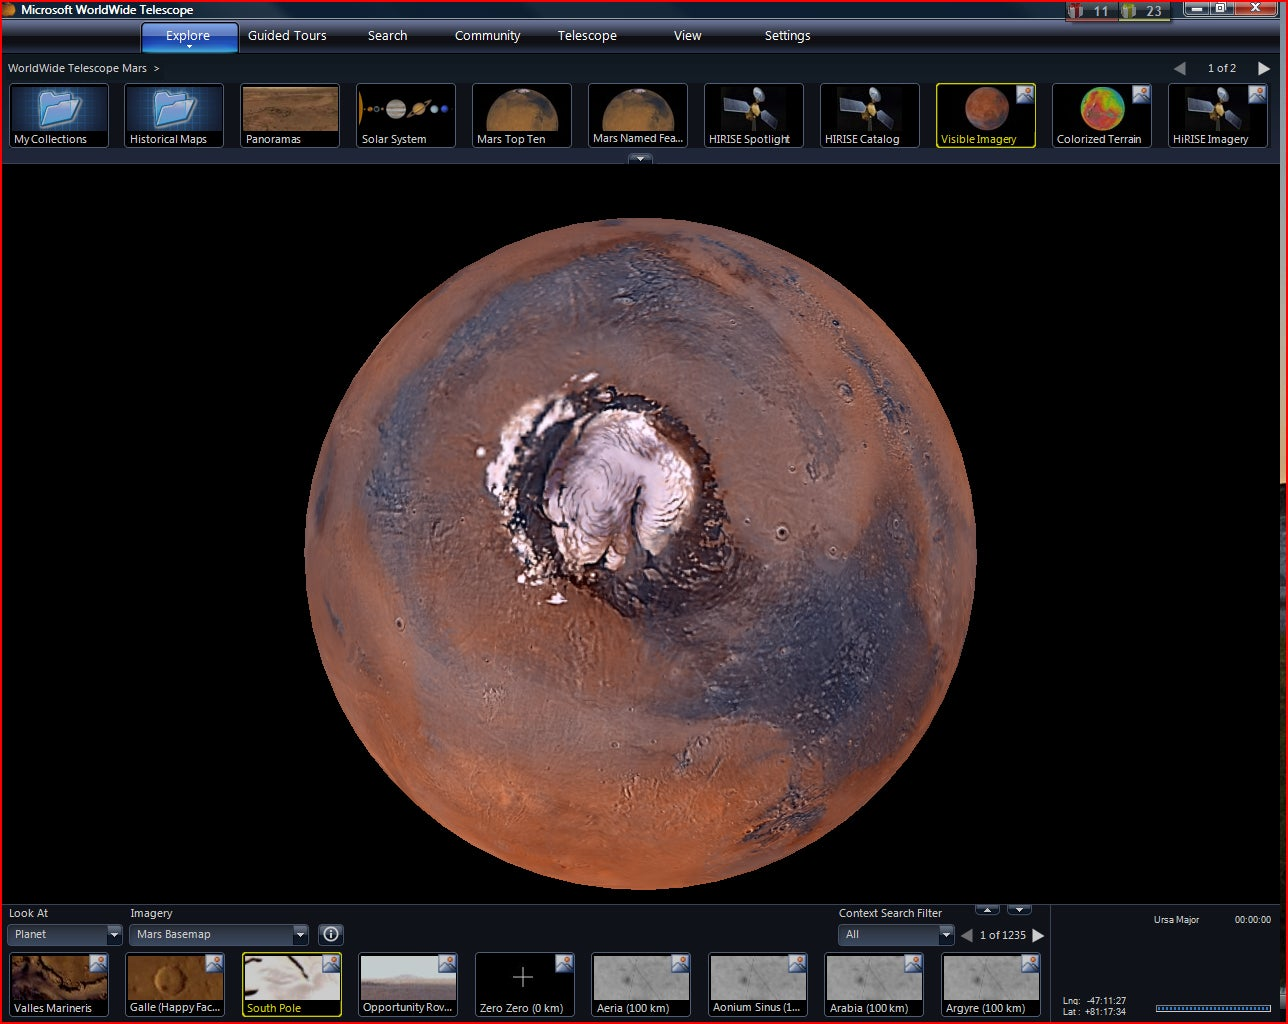 After 3 Years of Data Crunching, NASA and Microsoft Release Stunning New Interactive Mars Tour